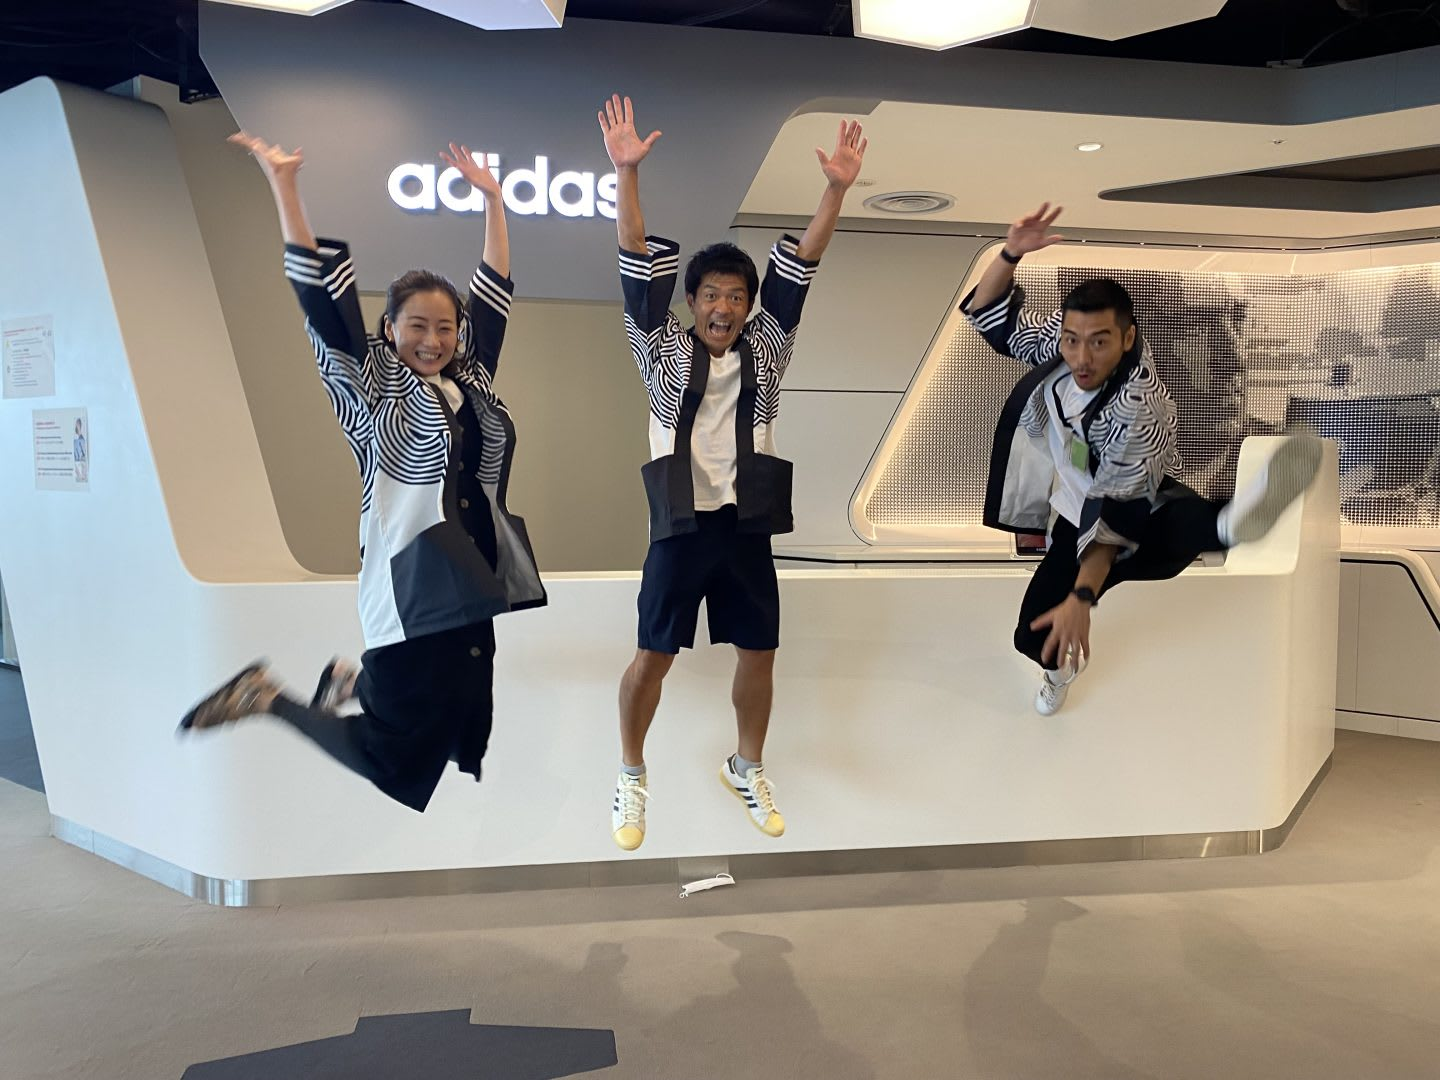 Ando and team with Takahashi Kimono jumping in the air. Project planning, adidas, Tokyo, Olympics,